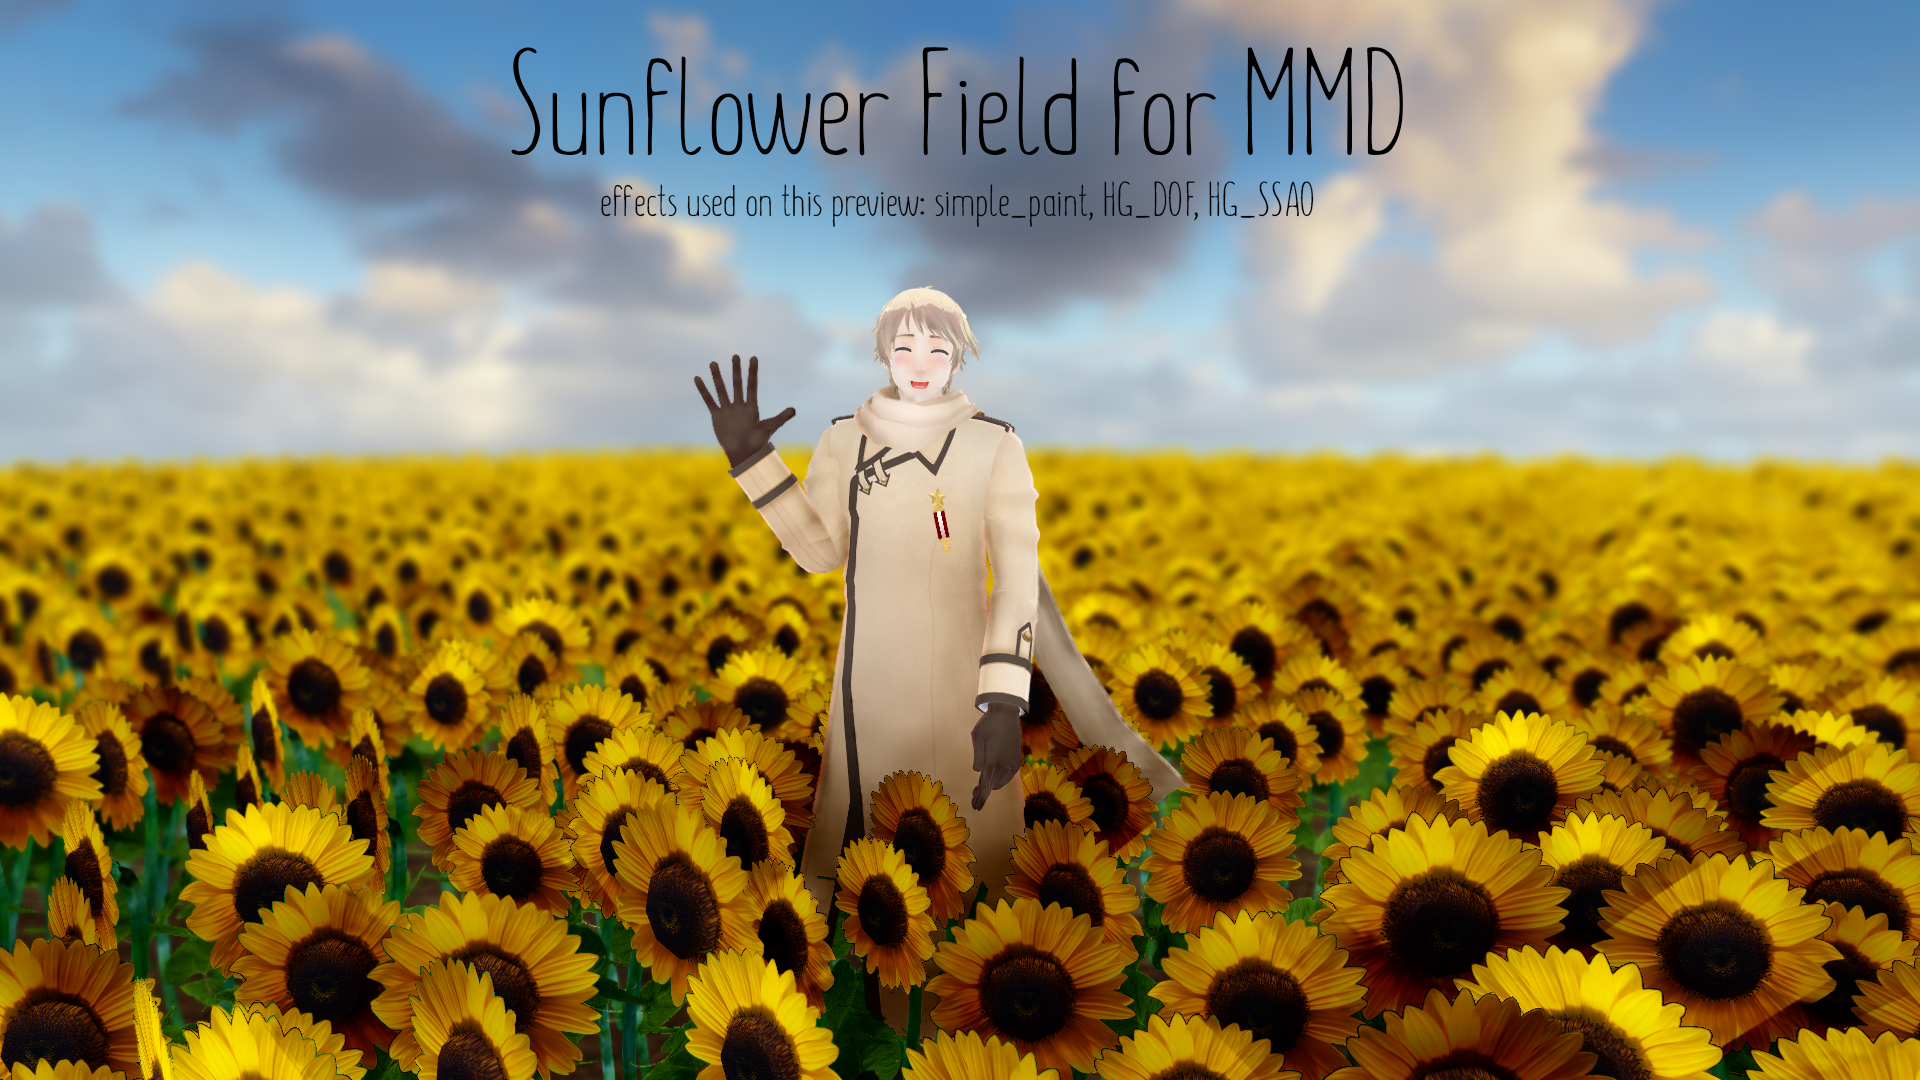 Sunflower Field [MMD DL] by ketokeas on DeviantArt